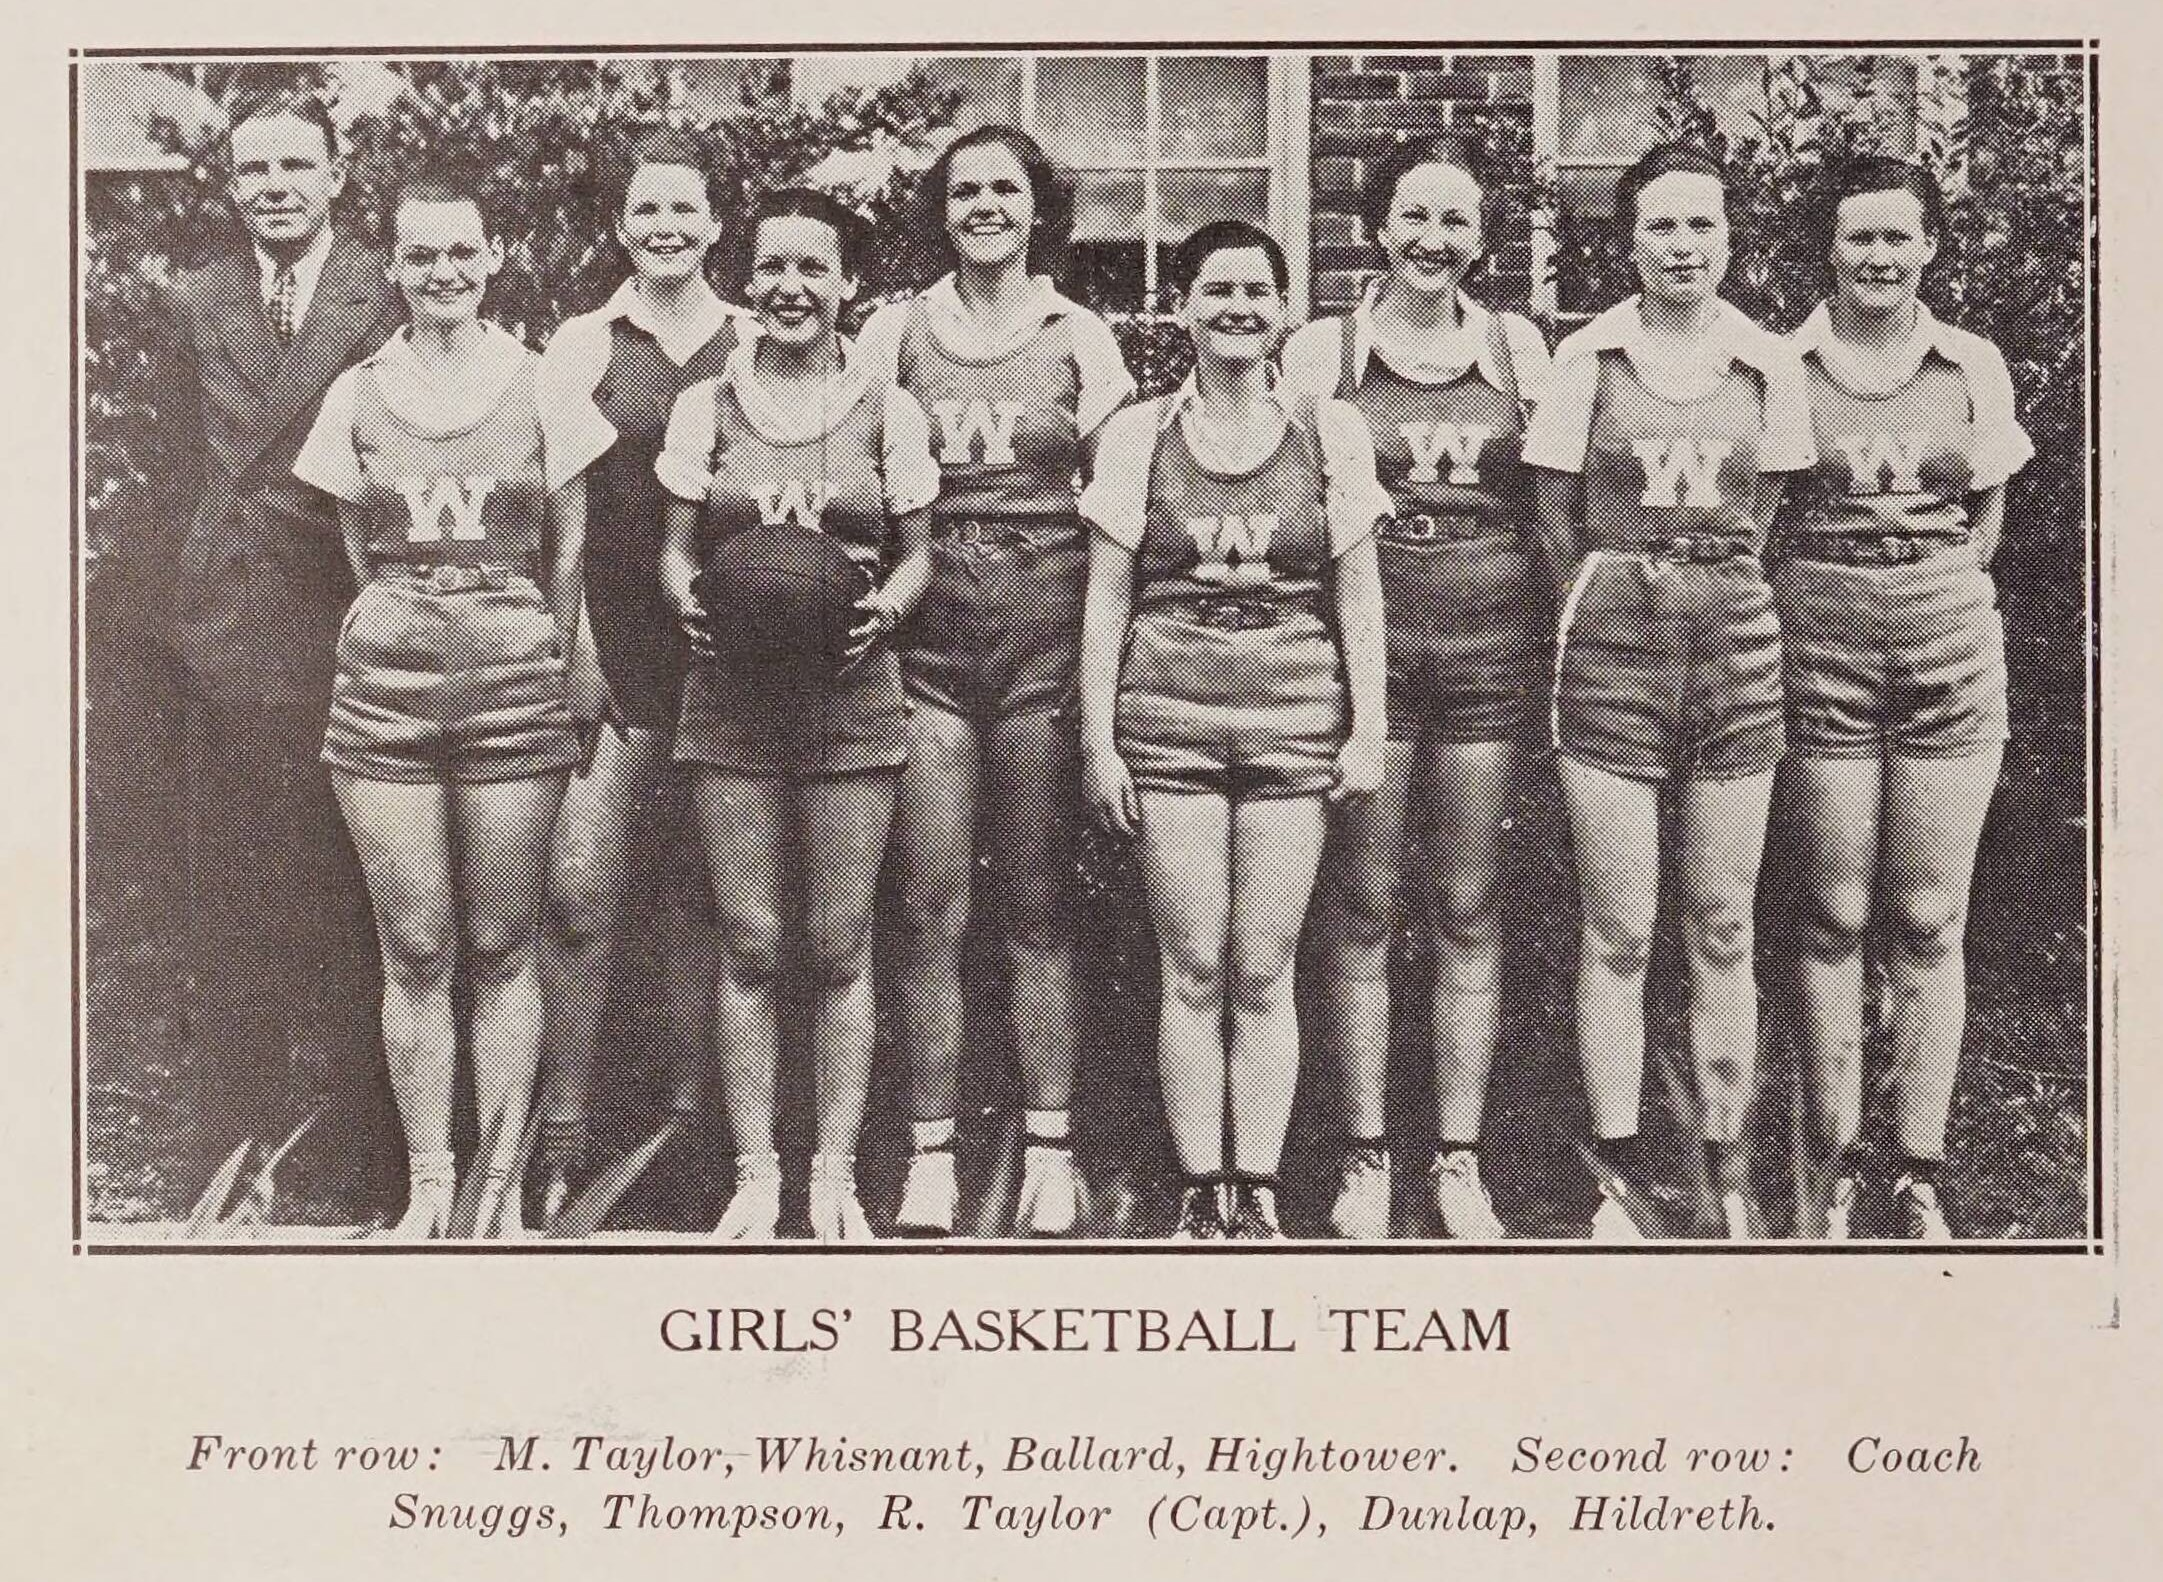 Wadesboro HS 1936 women's basketball team. Eight women lined up in their basketball uniforms. The coach, Coach Snuggs, is on the left.